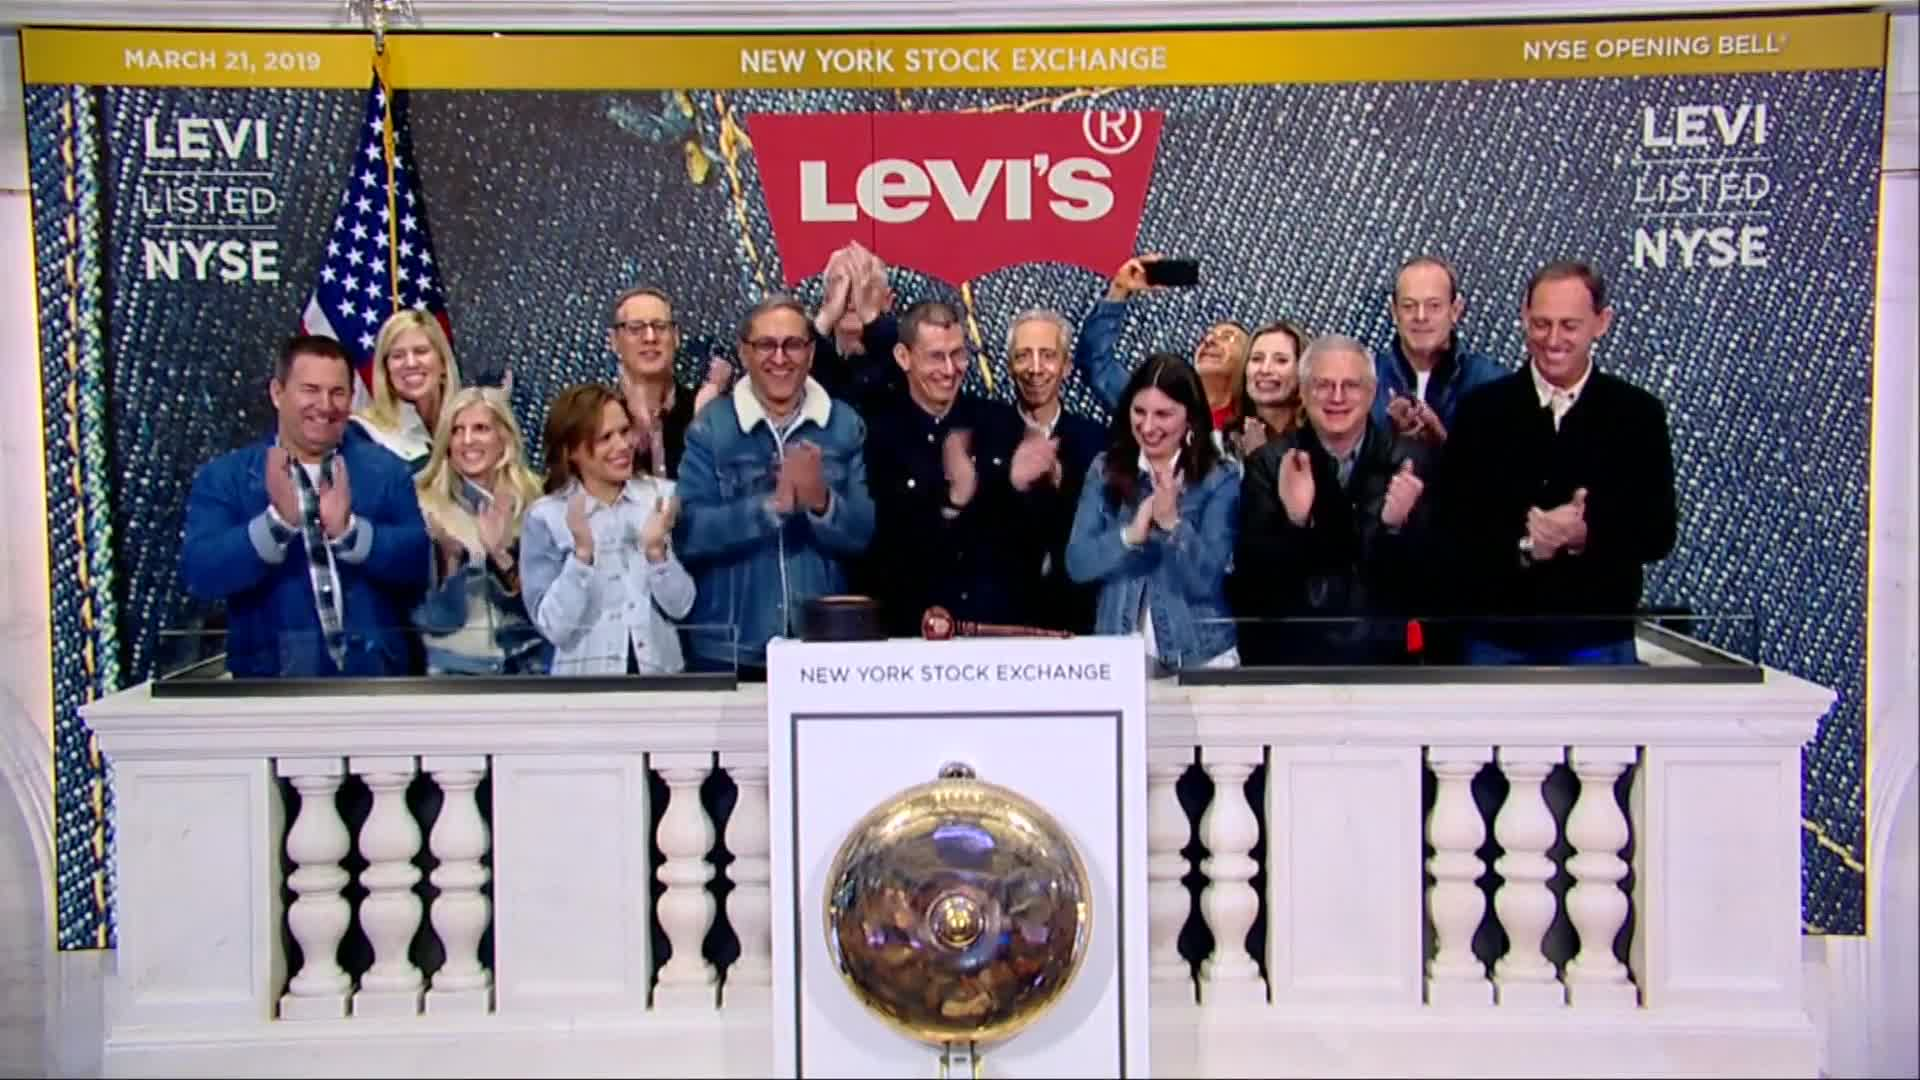 National News - Levi Strauss Shares Surge Over 30% In Market Debut